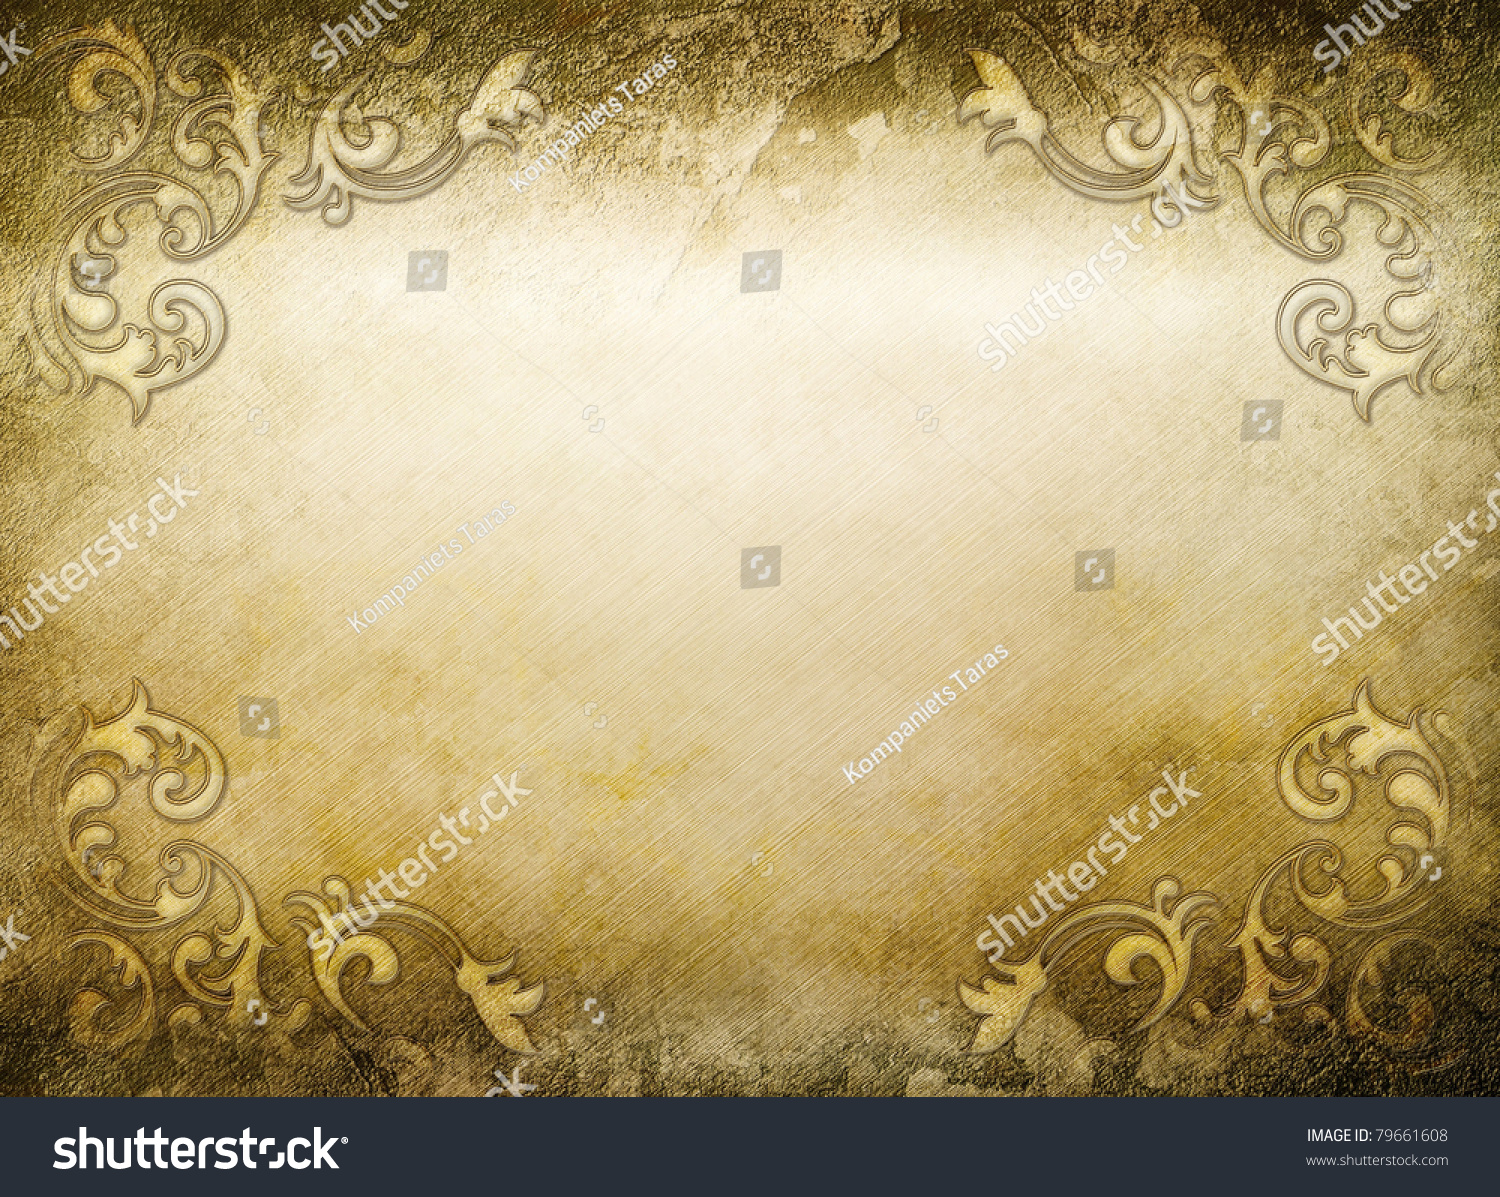 Vintage Golden Background Elegant Decor Elements Stock